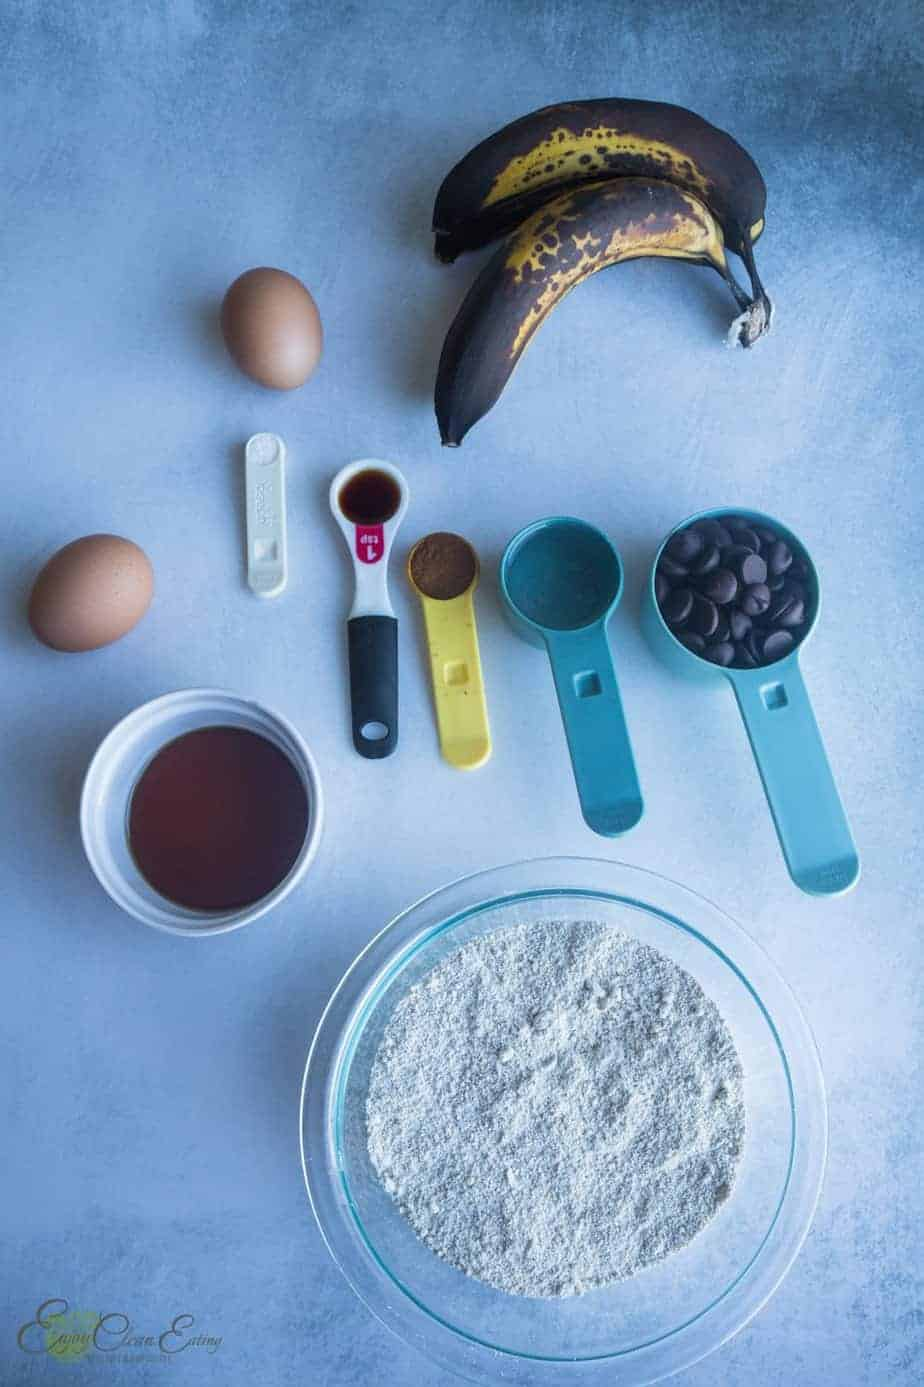 ingredients to make banana oatmeal cupcakes